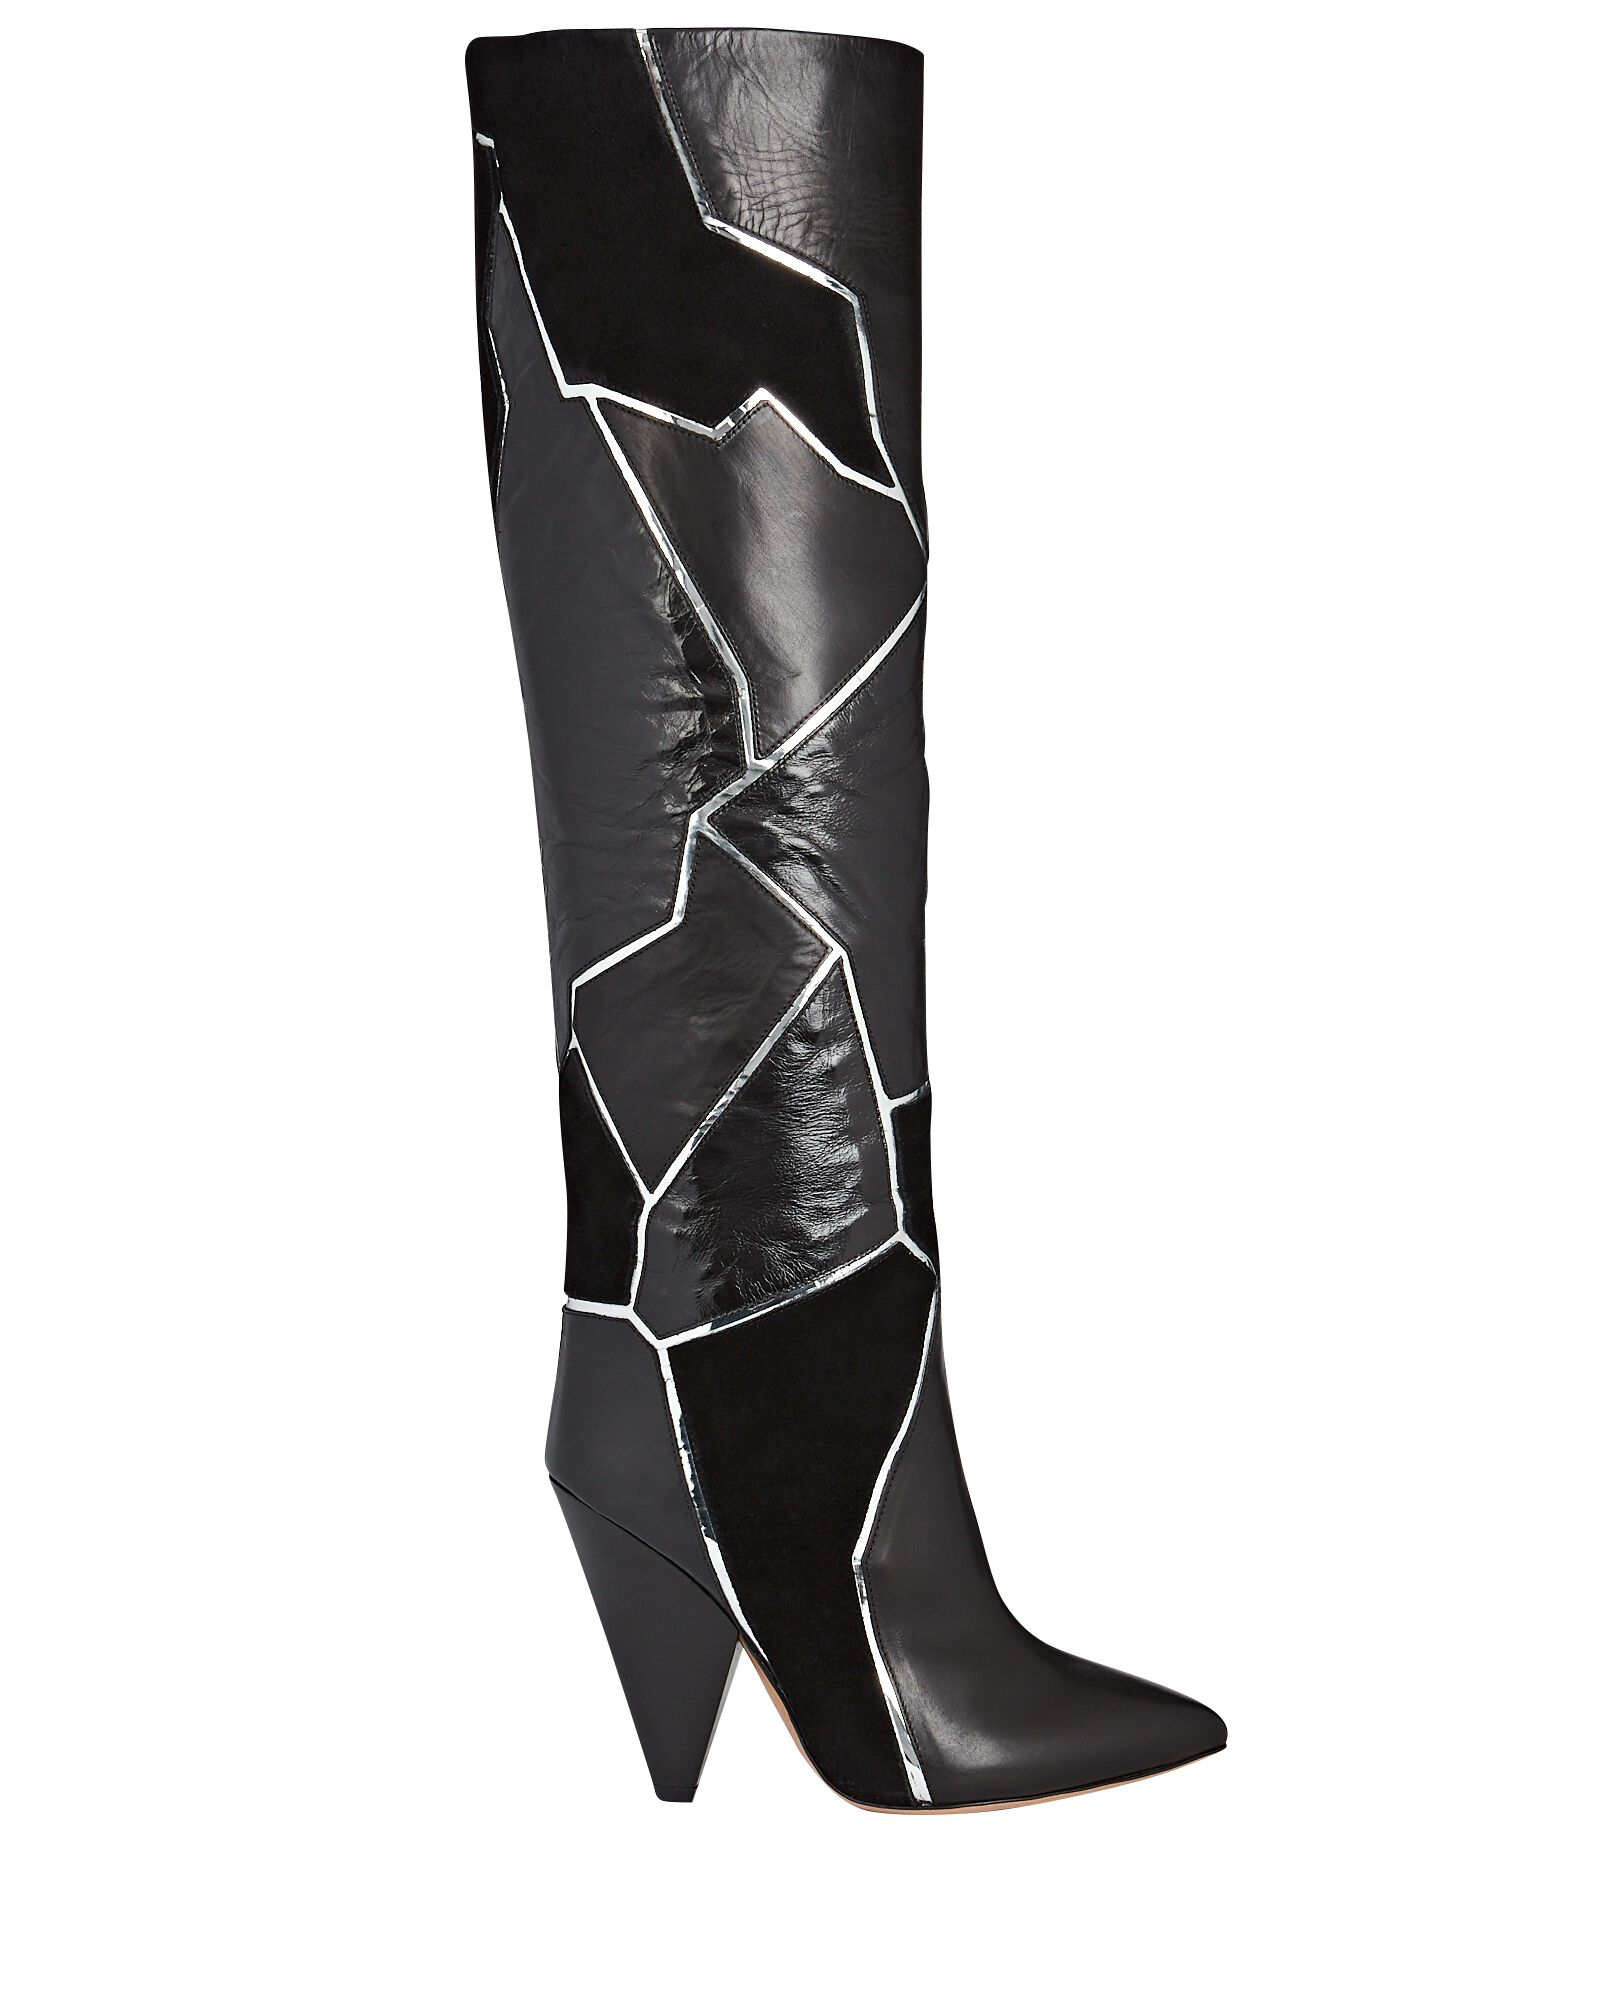 Lytica Patchwork Knee-High Boots, BLACK, hi-res